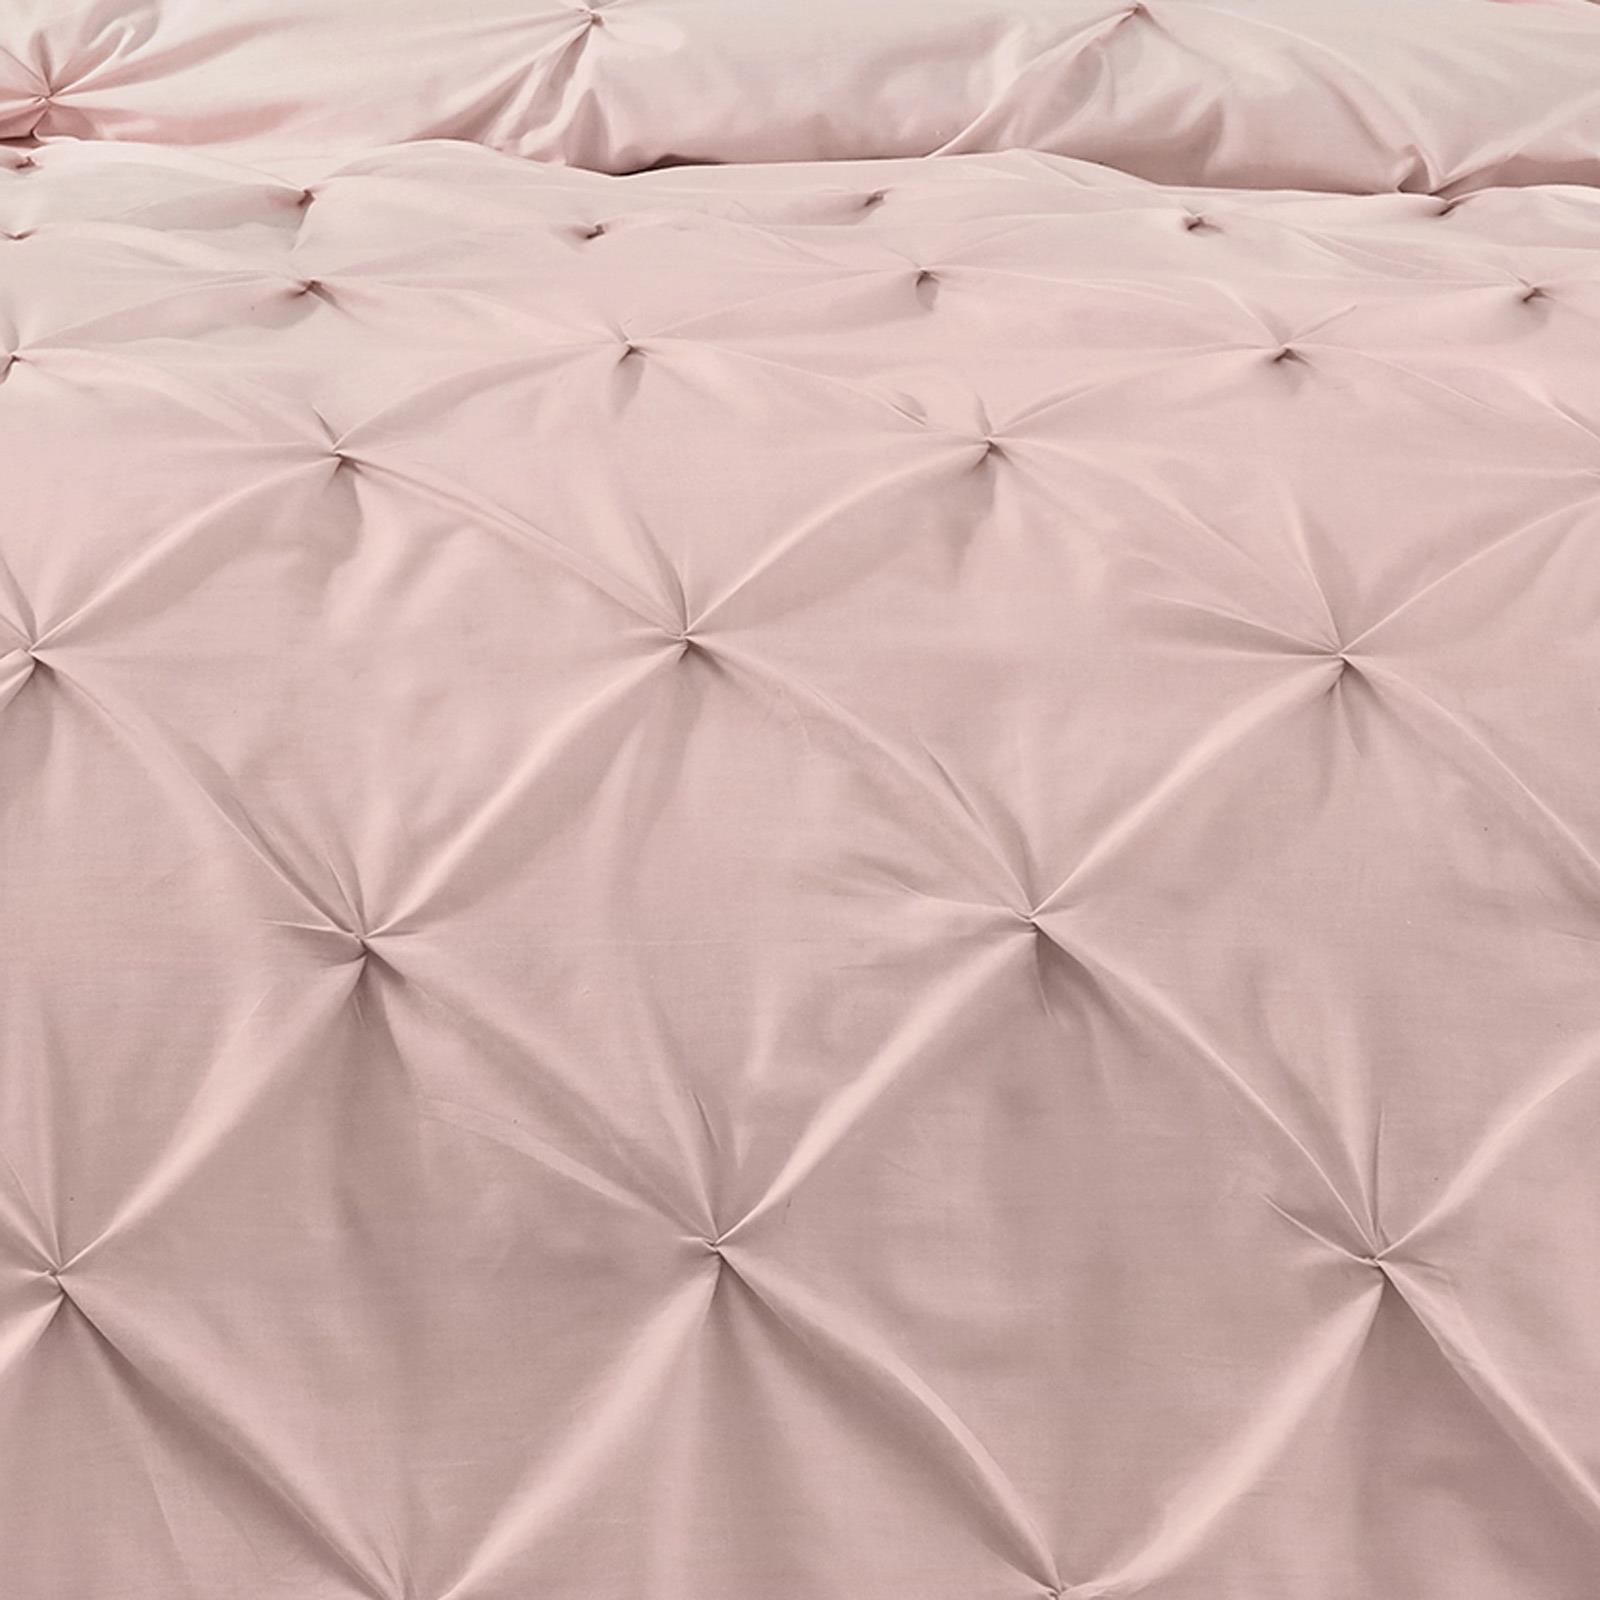 Blush-Duvet-Covers-Ruched-Pin-Tuck-Stitched-Plain-Pink-Quilt-Cover-Bedding-Sets thumbnail 13